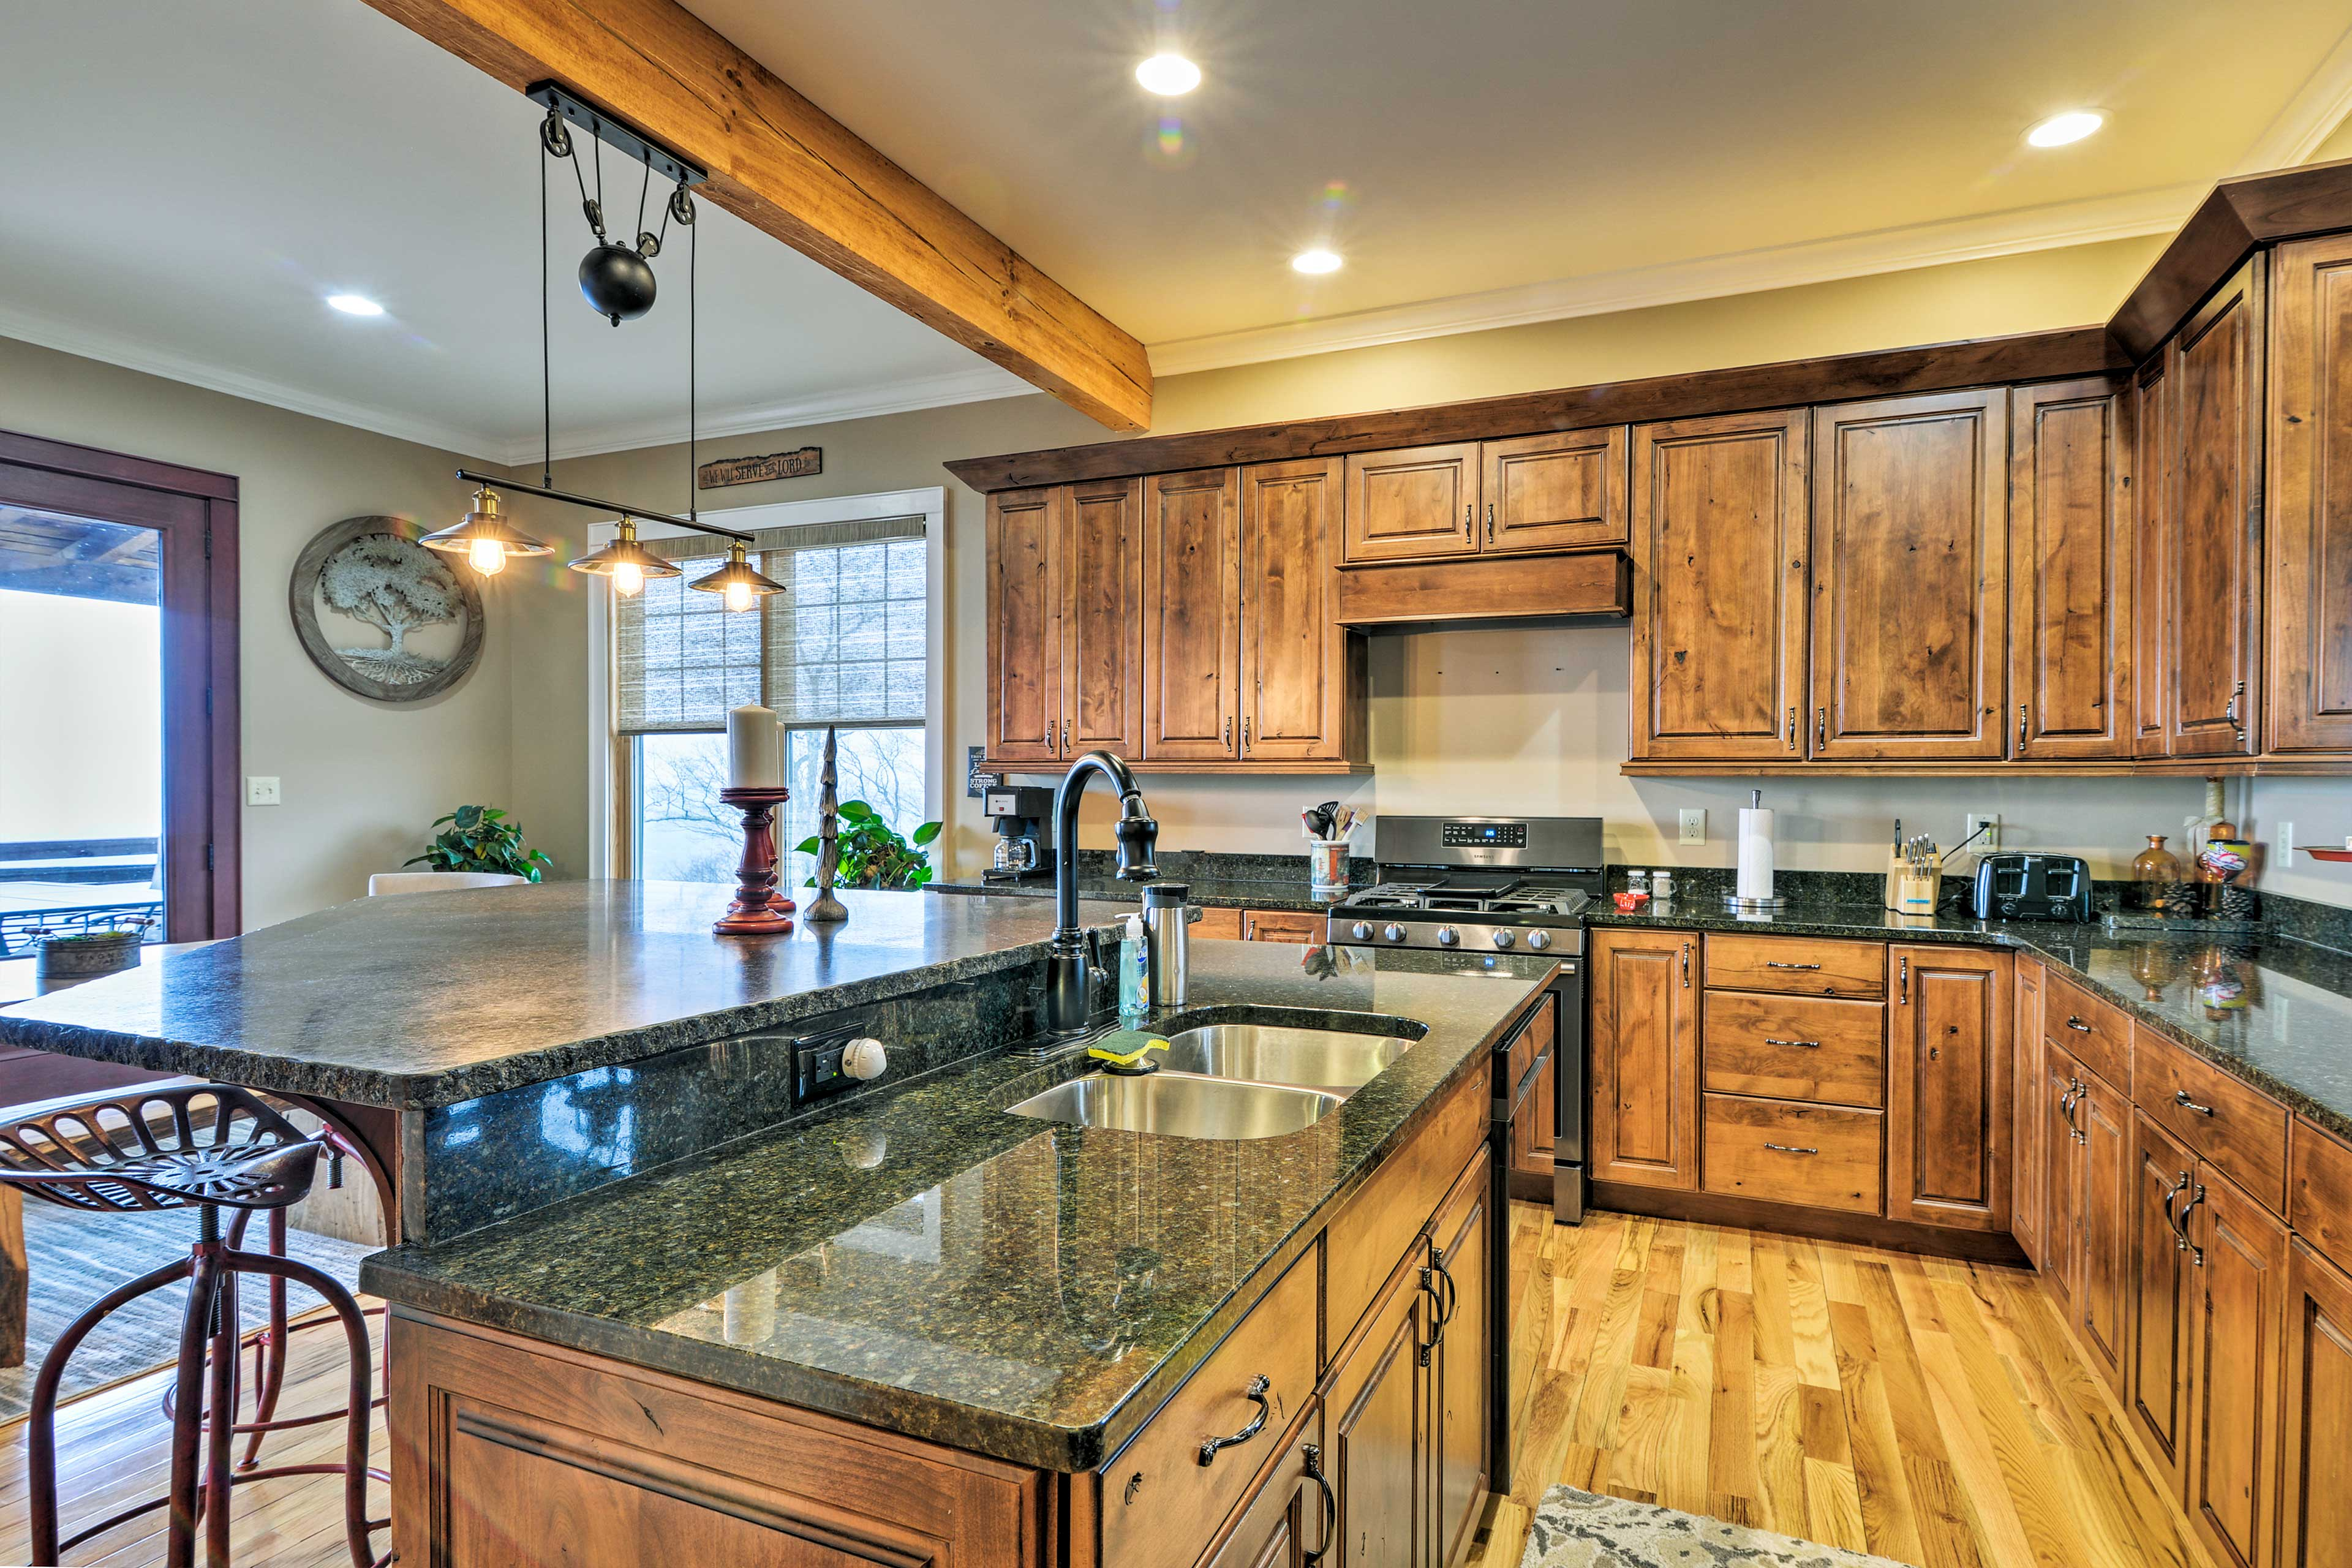 You'll love preparing your favorite mountain meals in this modern kitchen.